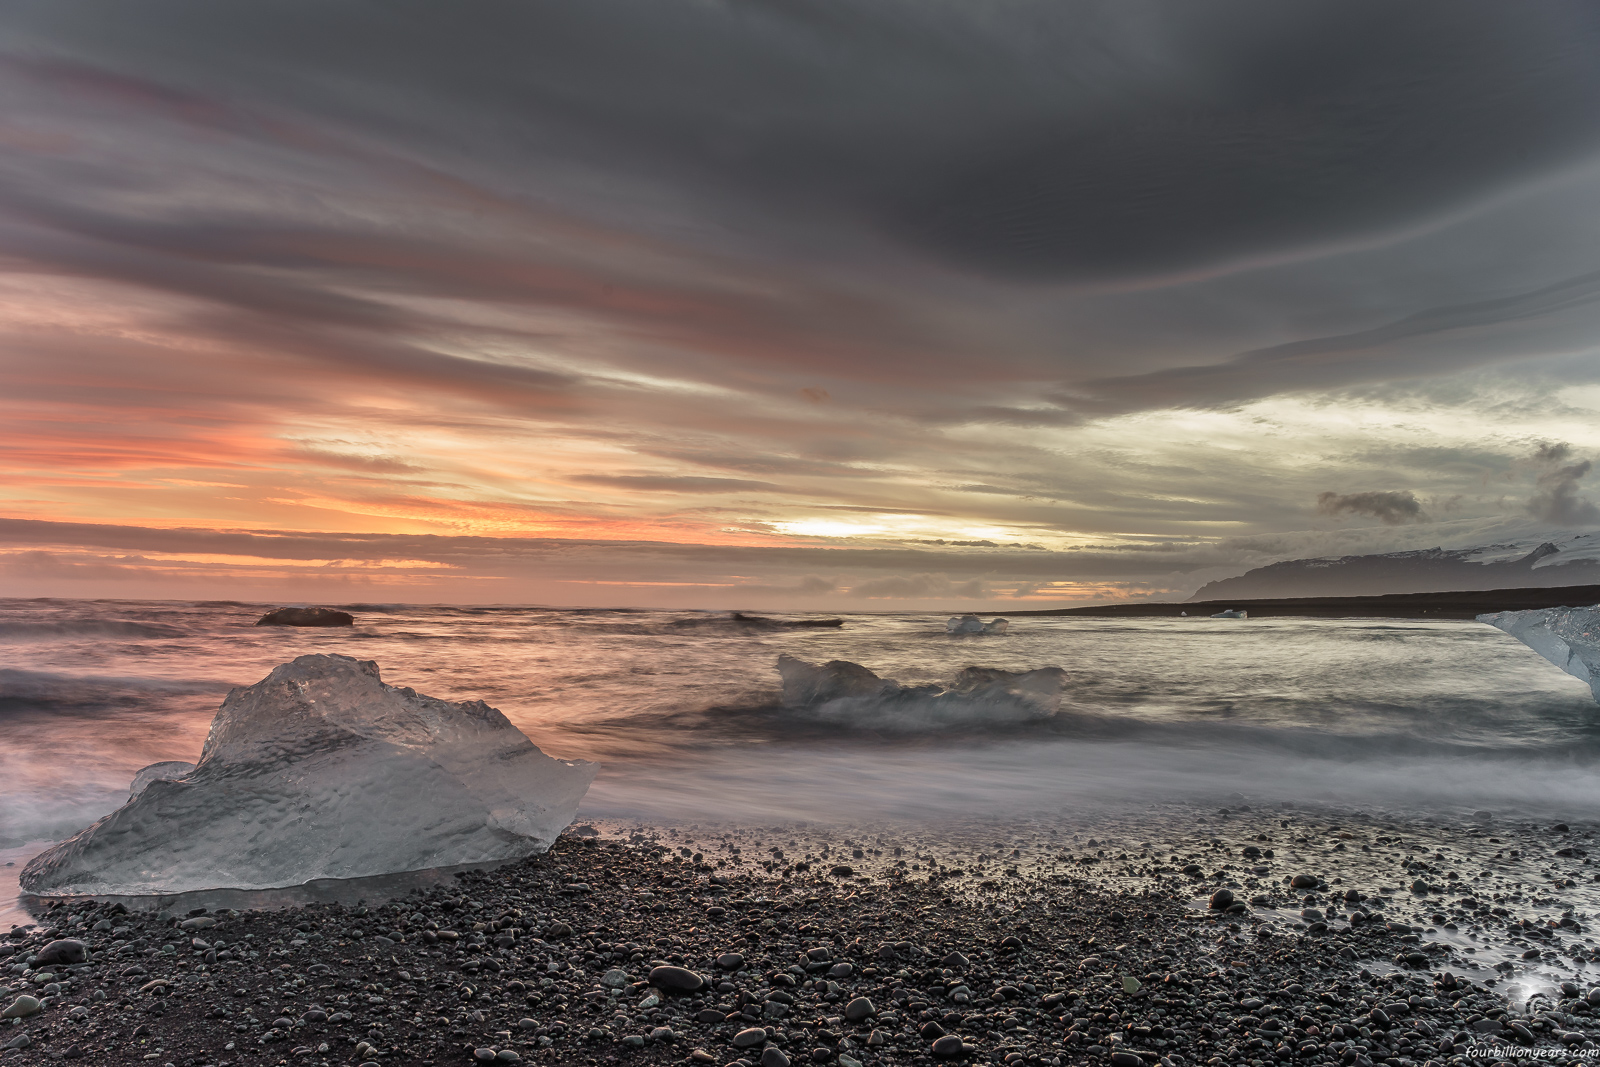 A7 in Iceland with Zuiko MF lenses